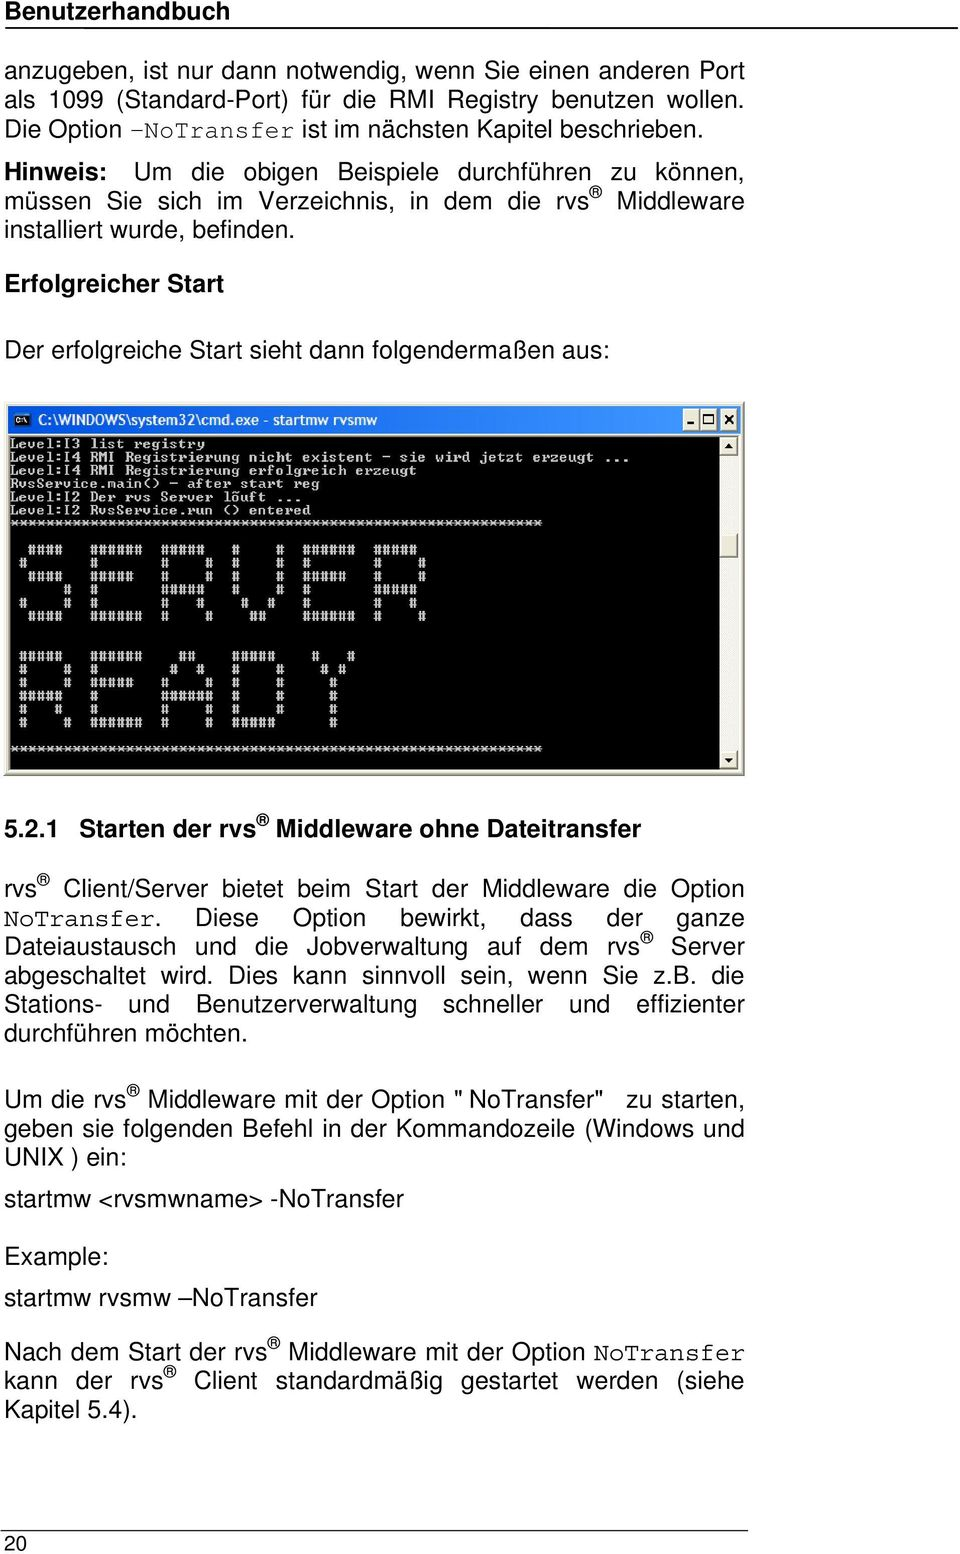 Erfolgreicher Start Der erfolgreiche Start sieht dann folgendermaßen aus: 5.2.1 Starten der rvs Middleware ohne Dateitransfer rvs Client/Server bietet beim Start der Middleware die Option NoTransfer.